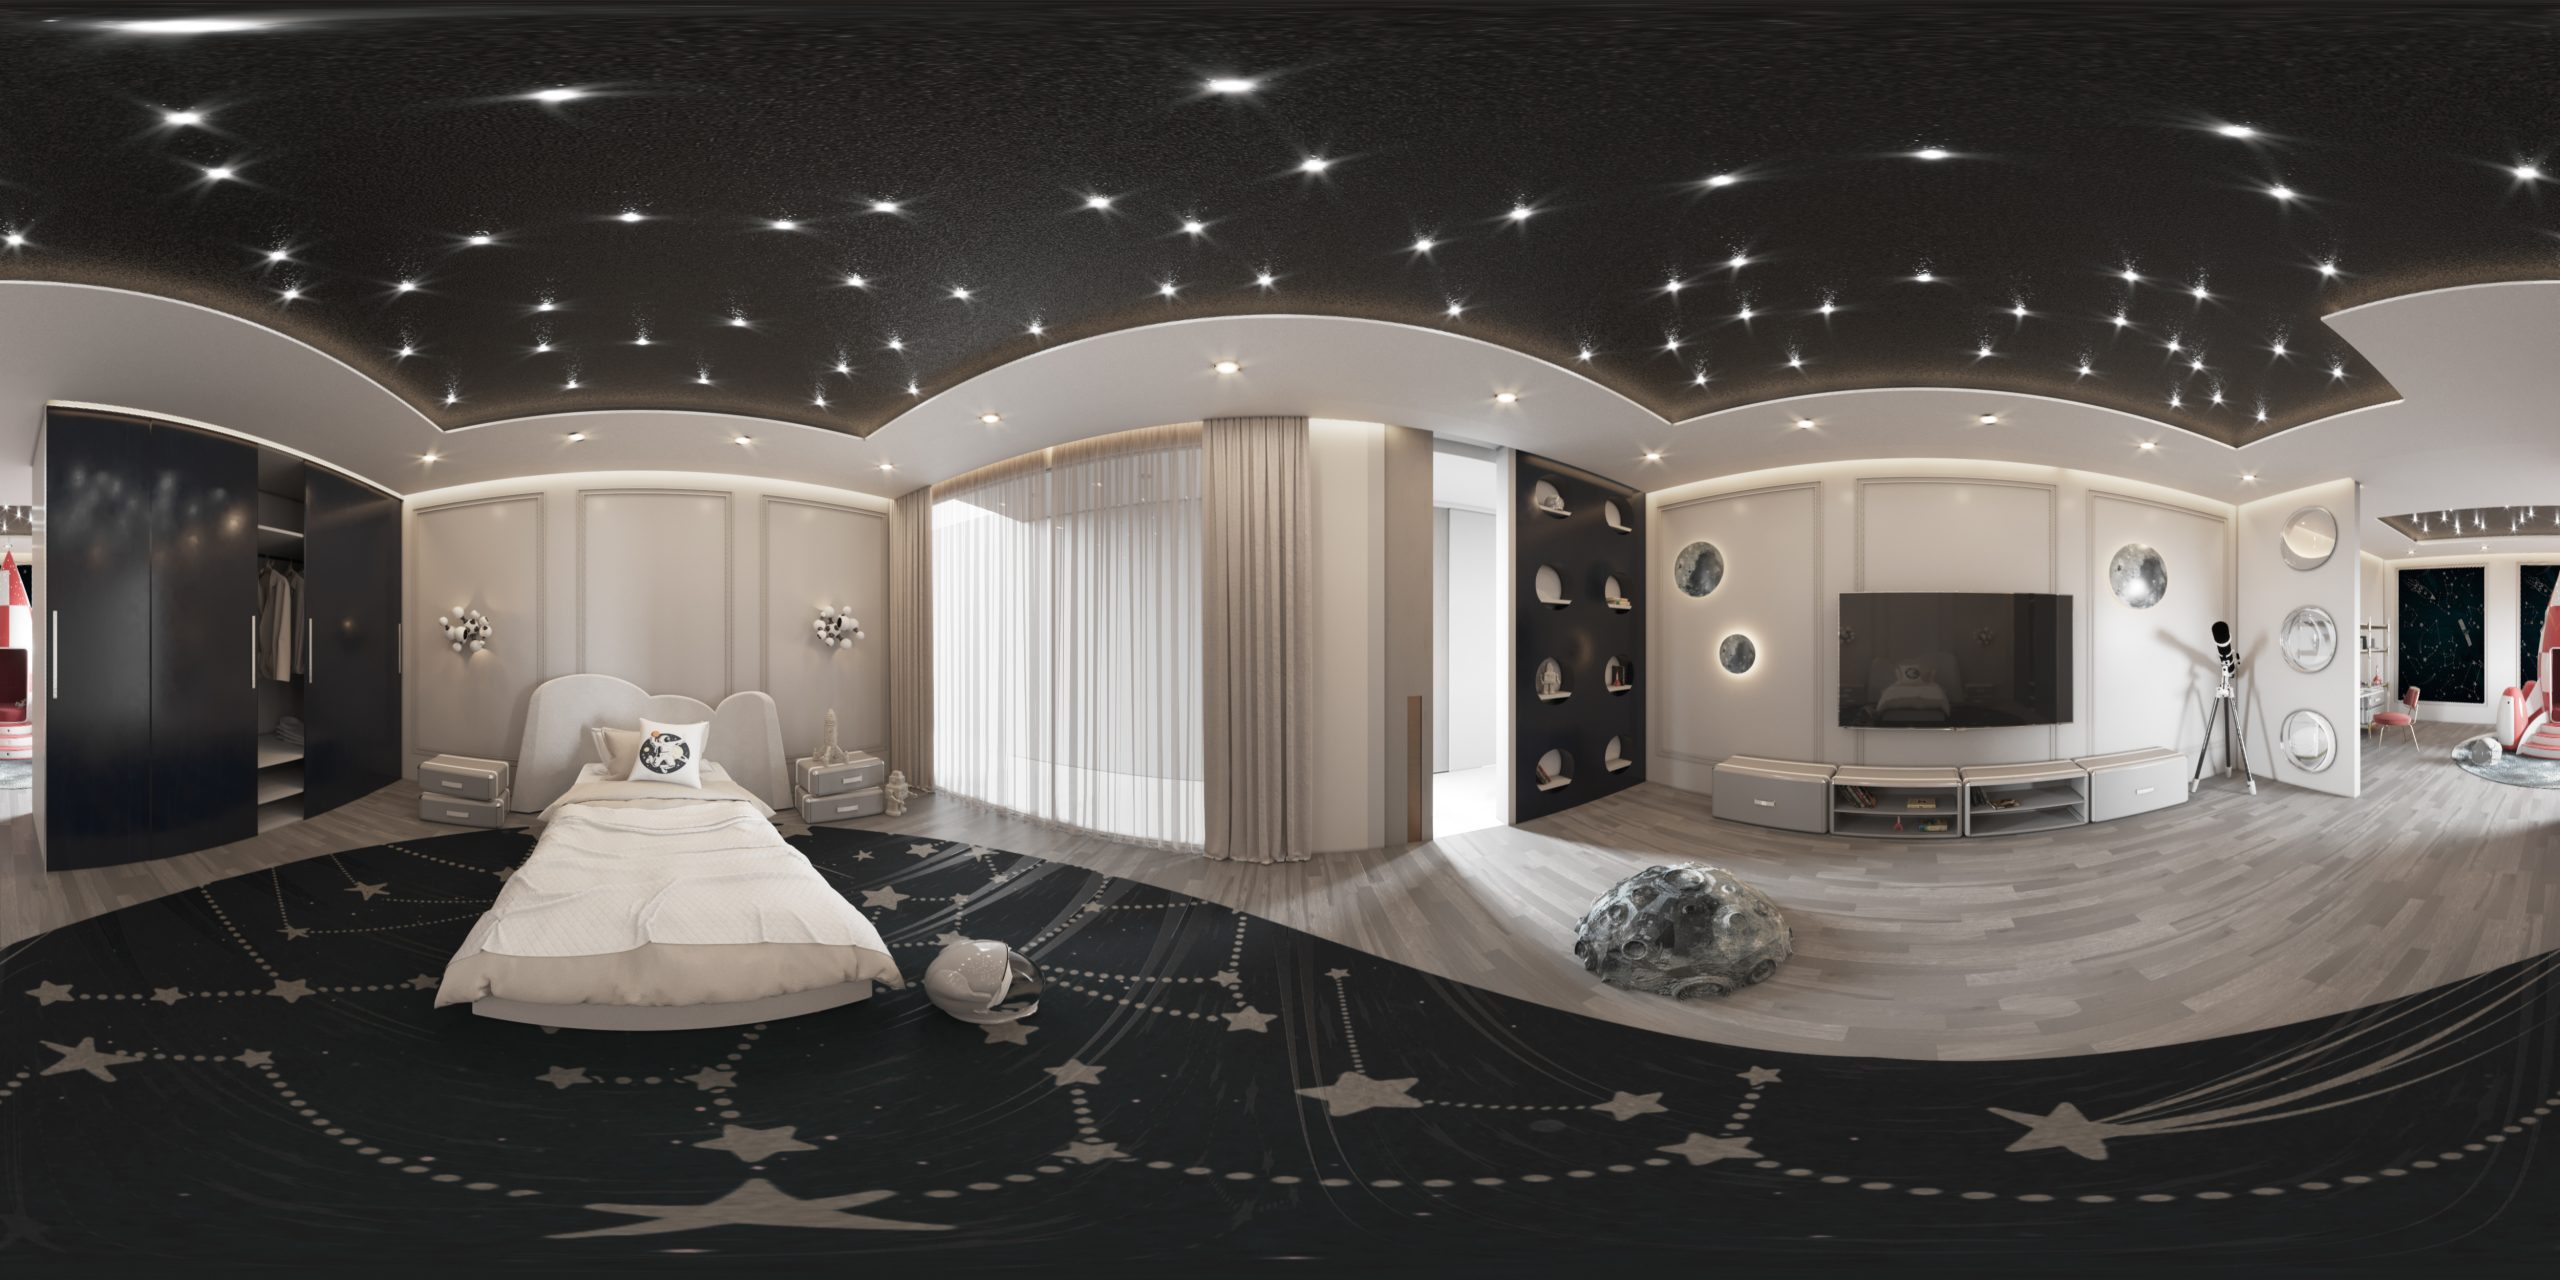 Luxury Space Theme Kids Room and playroom luxury space theme kids room Luxury Space Theme Kids Room: THE STARDOM ROOM CC 360 02 scaled